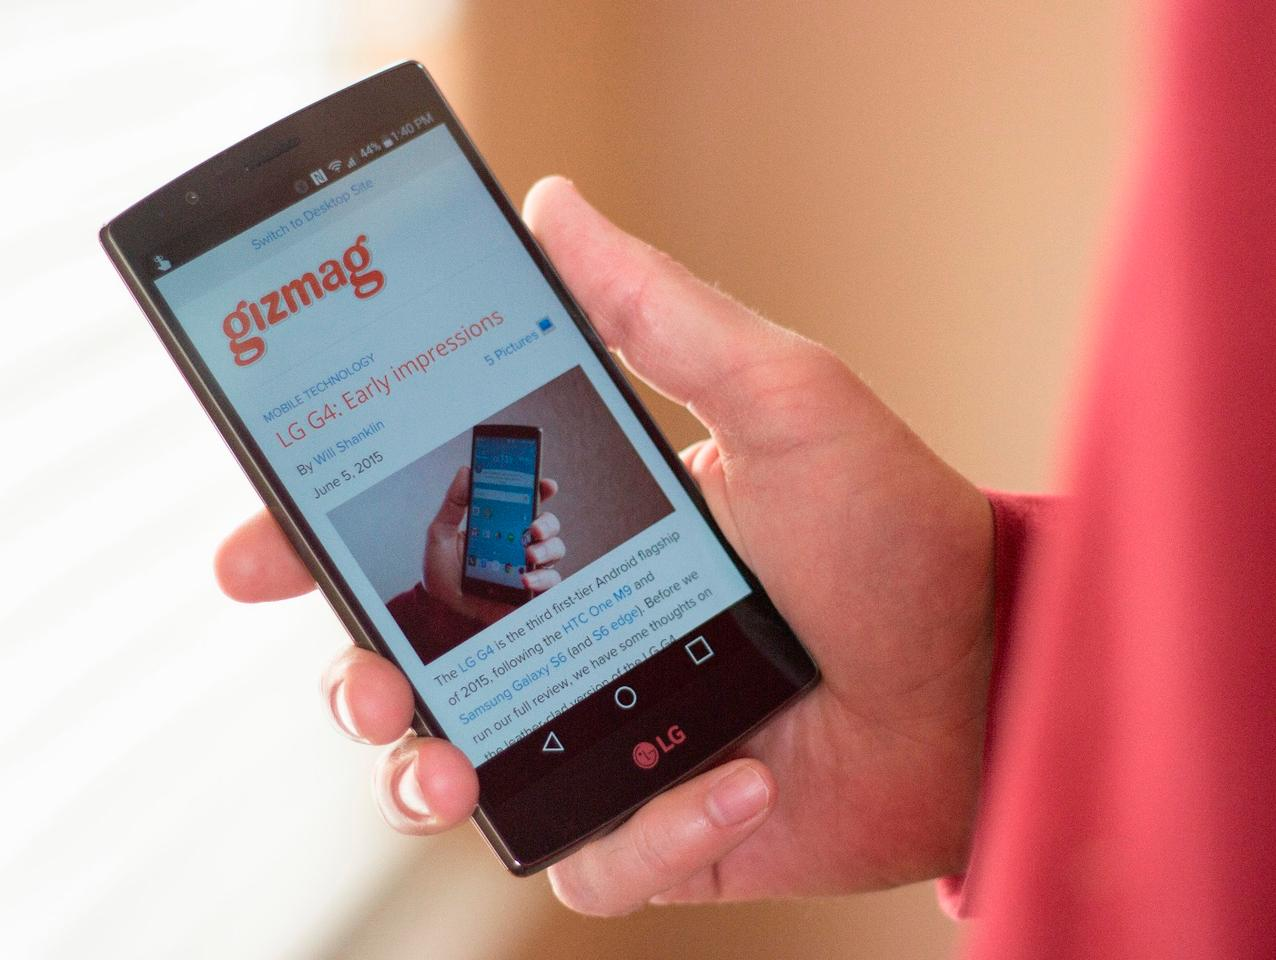 The LG G4 has a terrific display –5.5-inches, Quad HD resolution with terrific contrast and color saturation